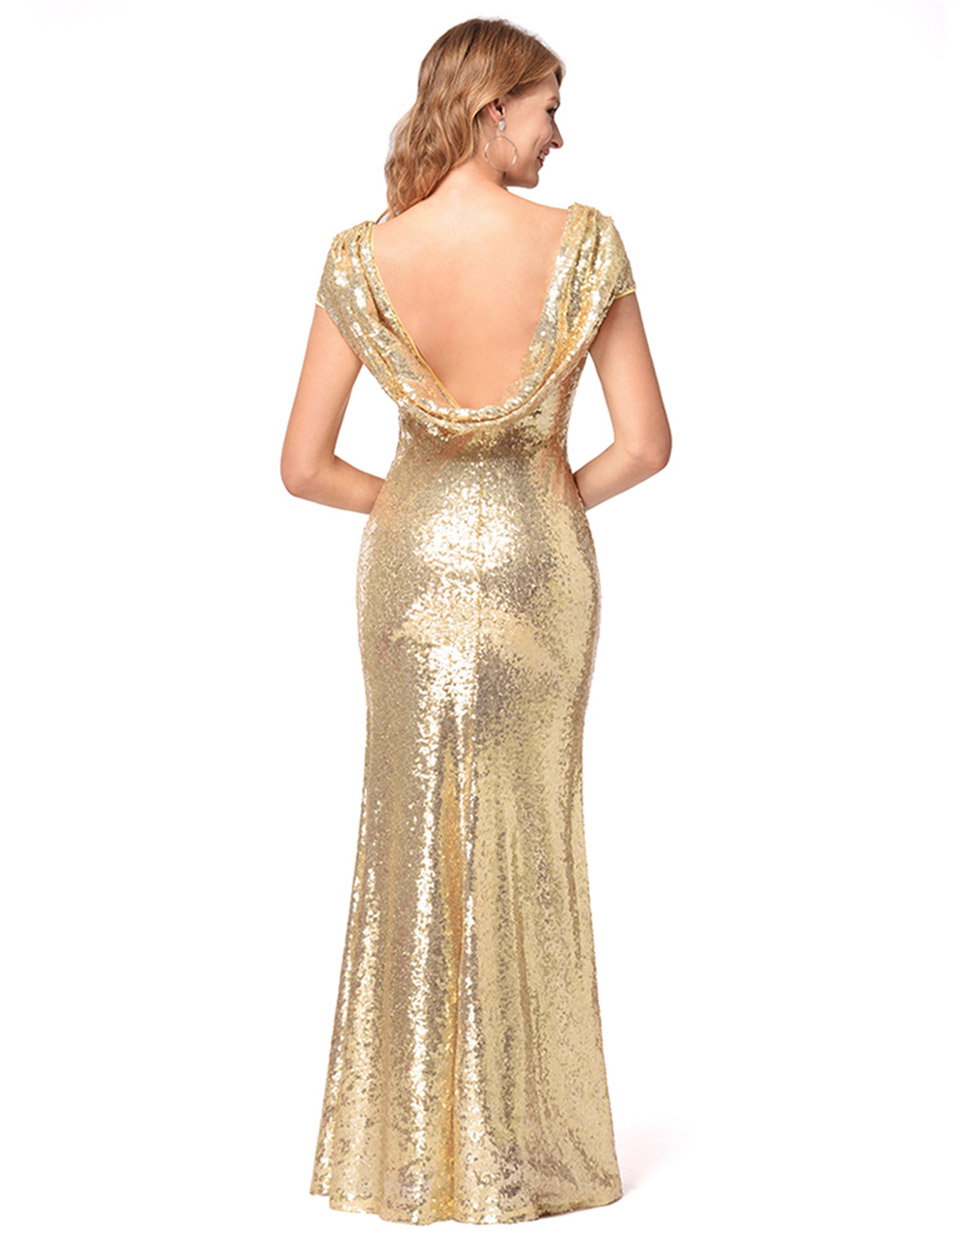 Luxury Gold Silver Long Sequin Dress Gold O Neck Evening Gowns short  Sleevele Prom Formal Dresses Mermaid Long Formal Dress ... 6b00026c0230